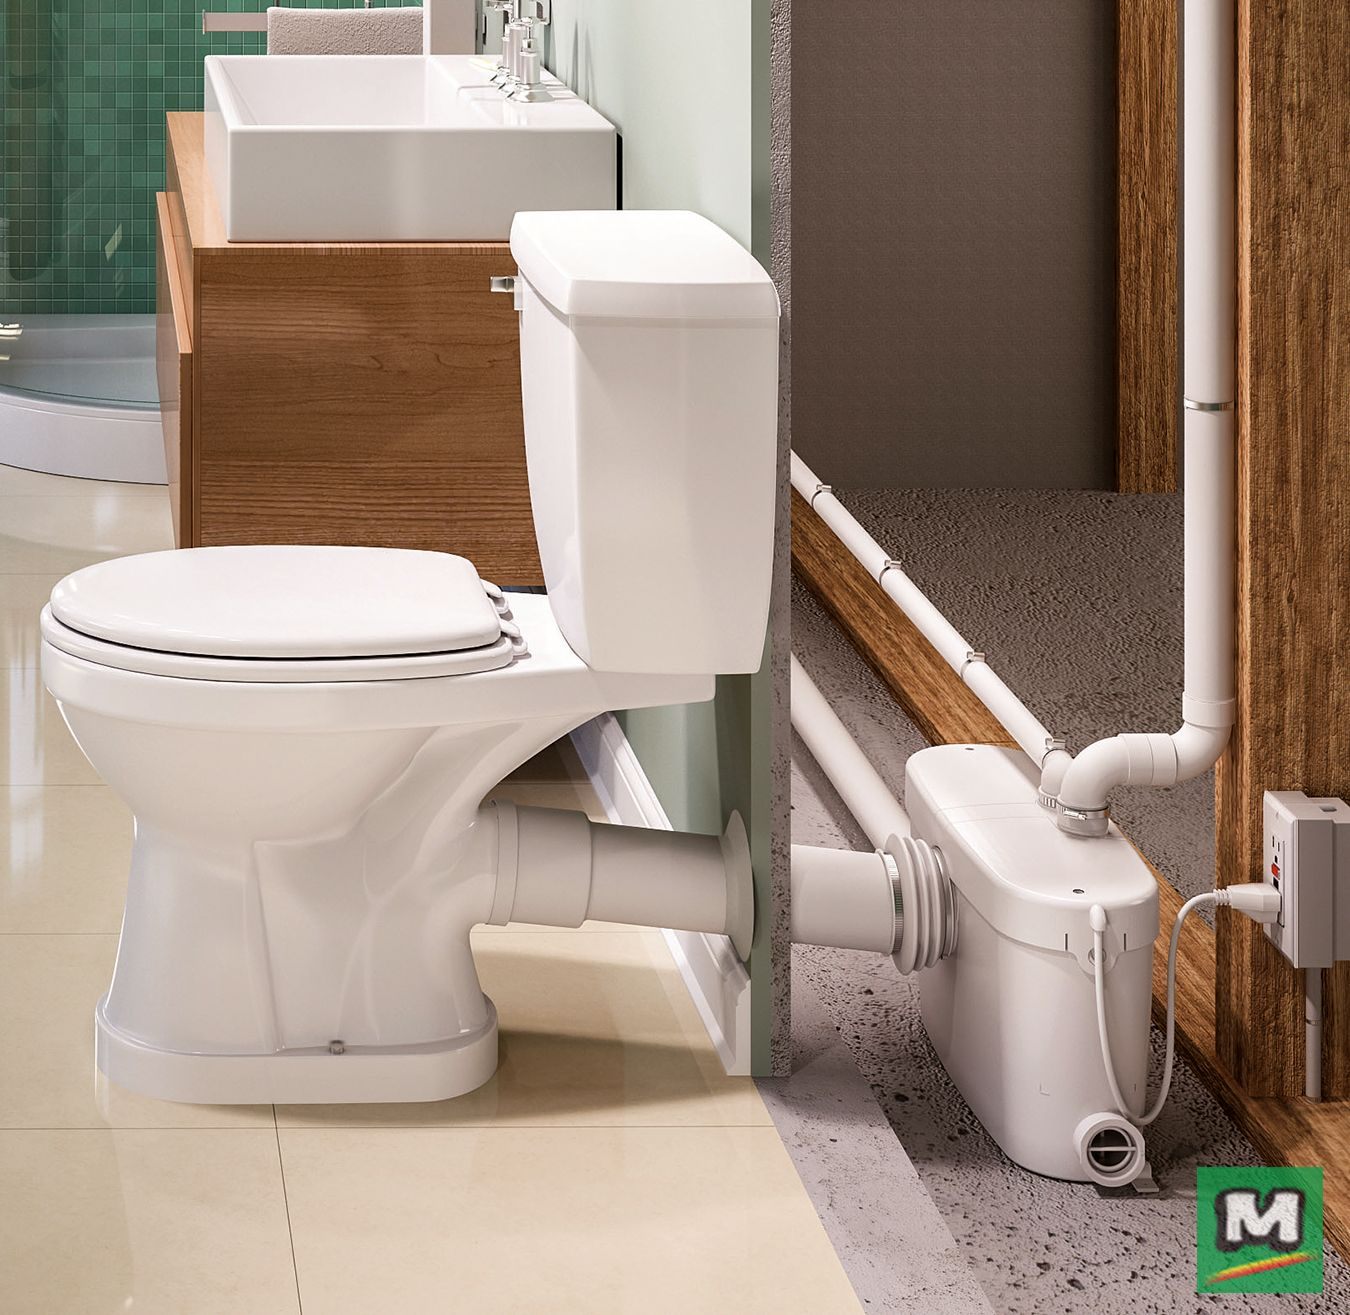 Install A Toilet Install A Basement Bathroom Without The Need To Break Concrete